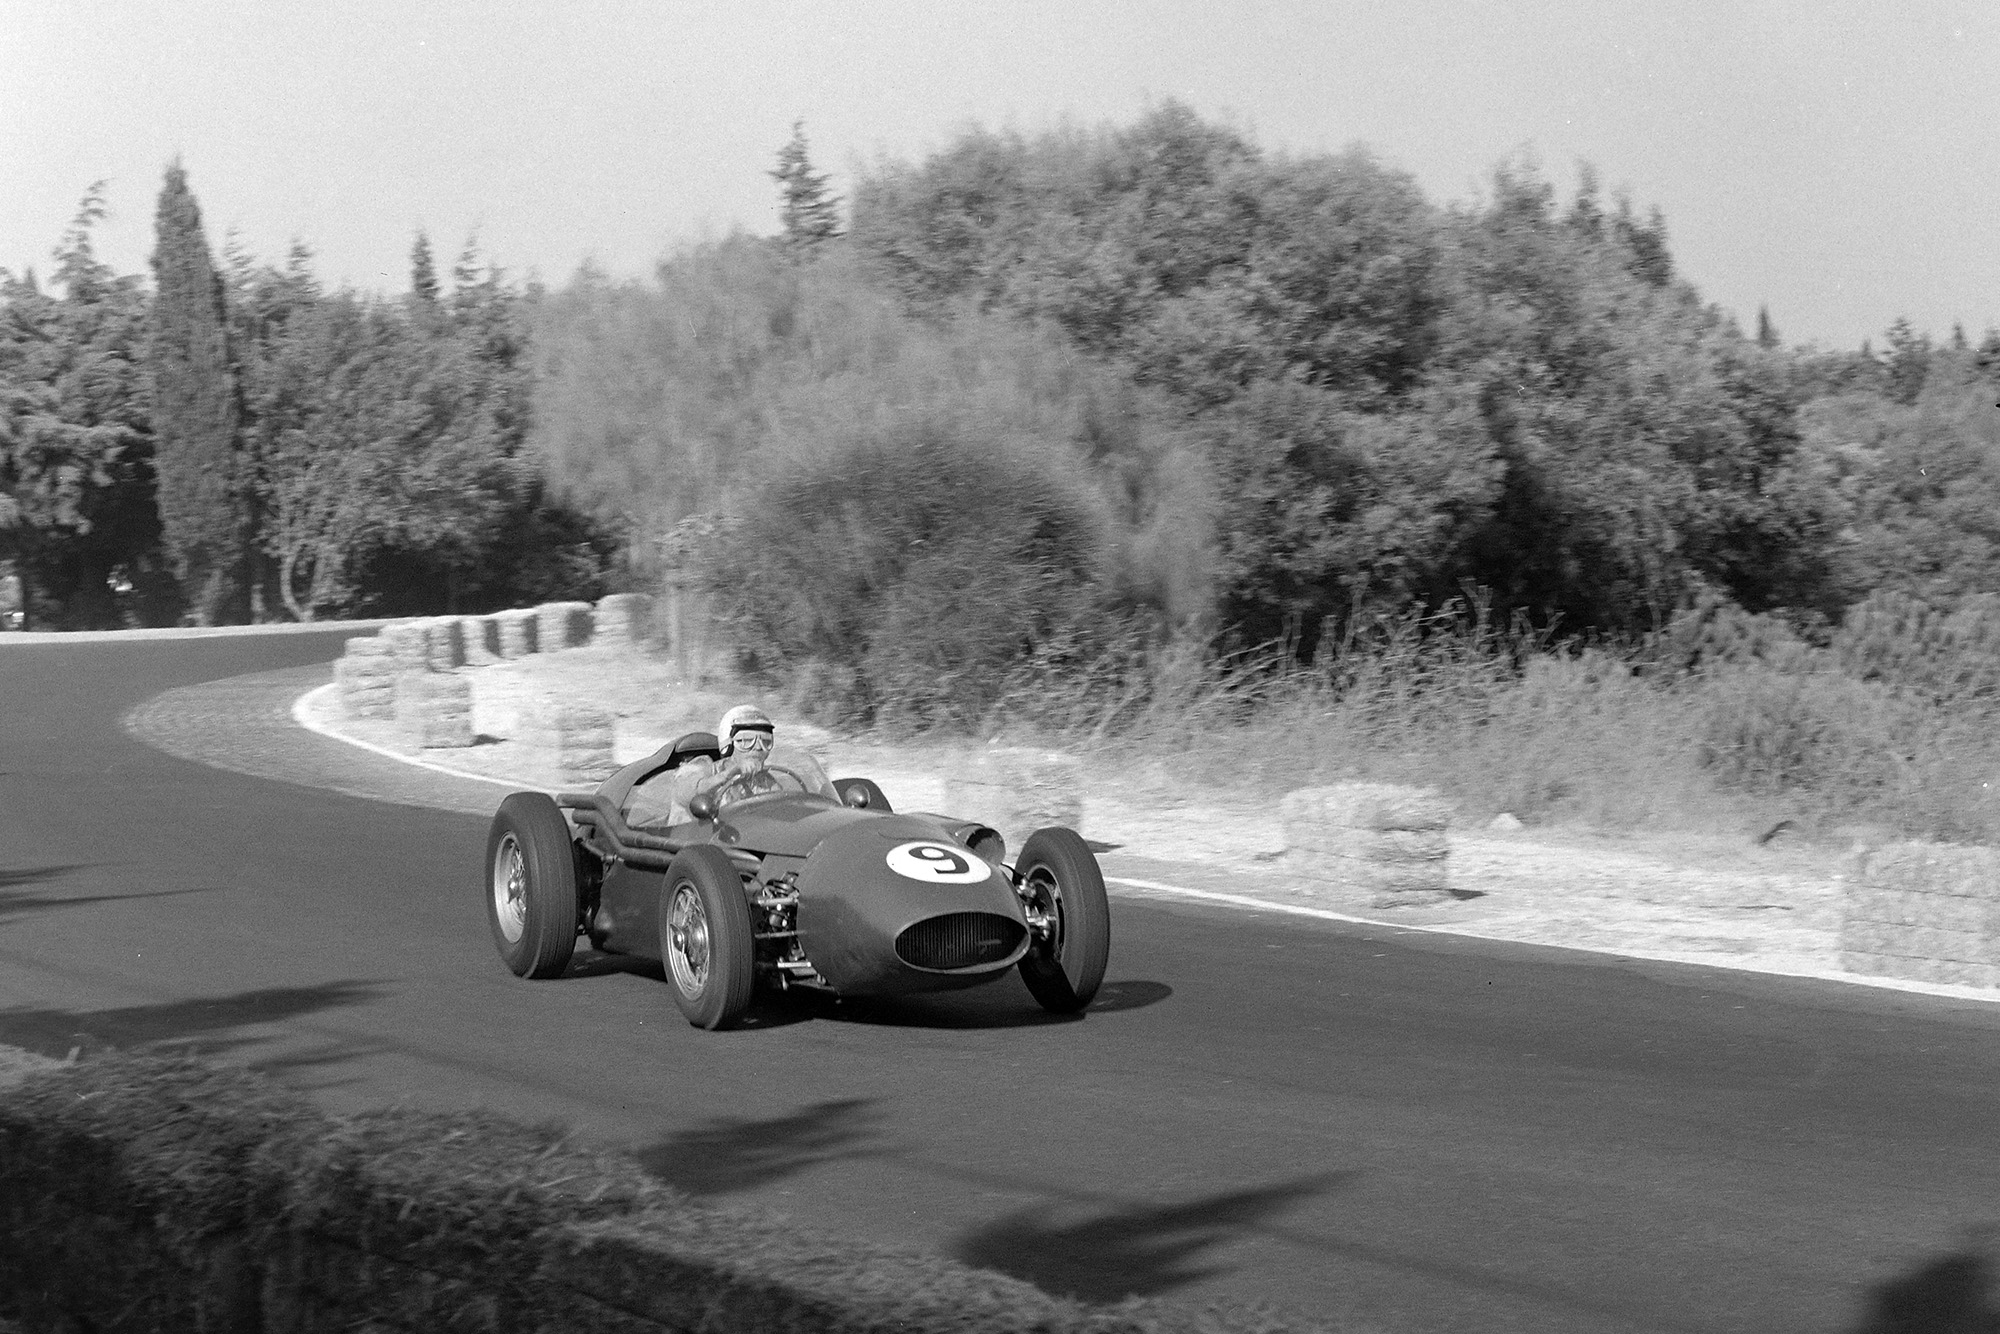 Carroll Shelby in an Aston Martin DBR4 250 during the 1959 F1 Portuguese Grand Prix